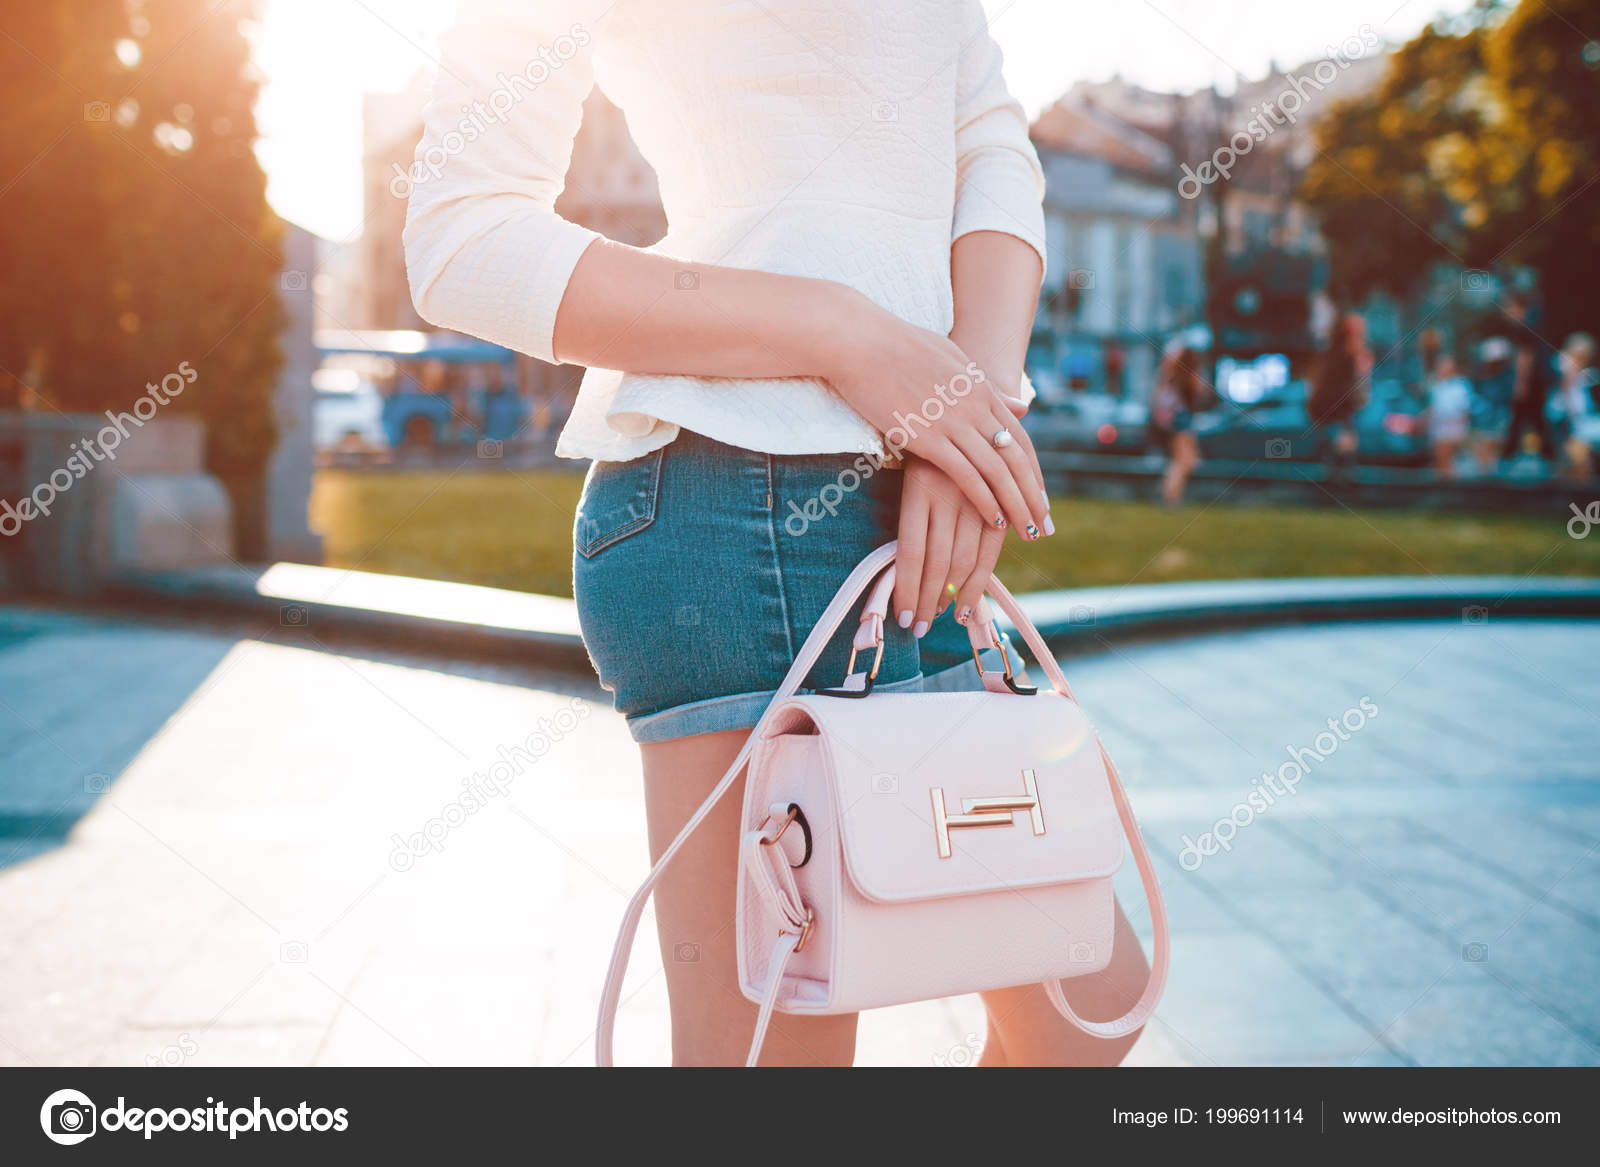 cdd4e933 Young woman wearing stlish outfit with accessories outdoors. Trendy female  handbag, clothing and jewellery. Beauty fashion concept — Photo by ...